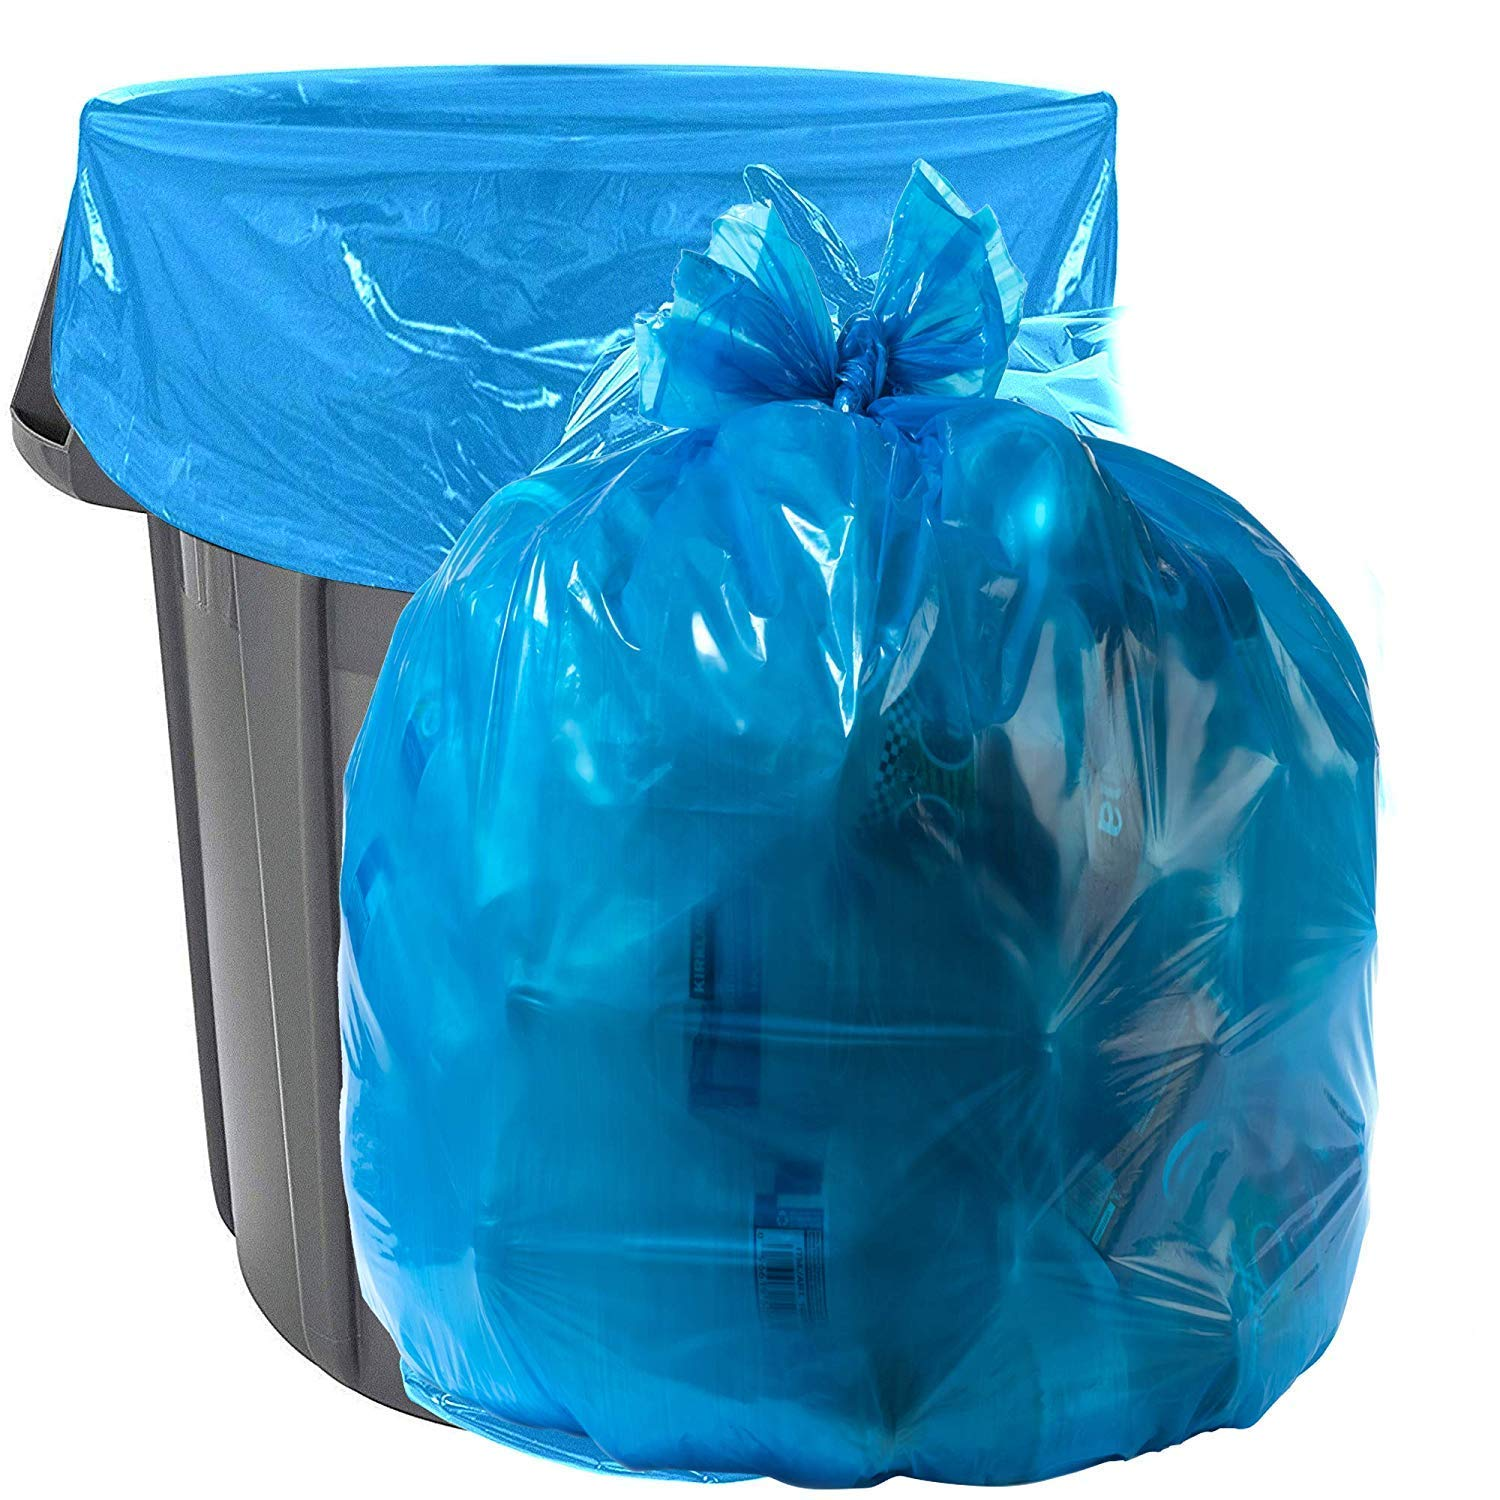 Aluf Plastics 33 Gallon Blue Trash Bags - (Pack of 100) - 1.5 MIL (Equivalent) - Garbage or Recycling Bags 33